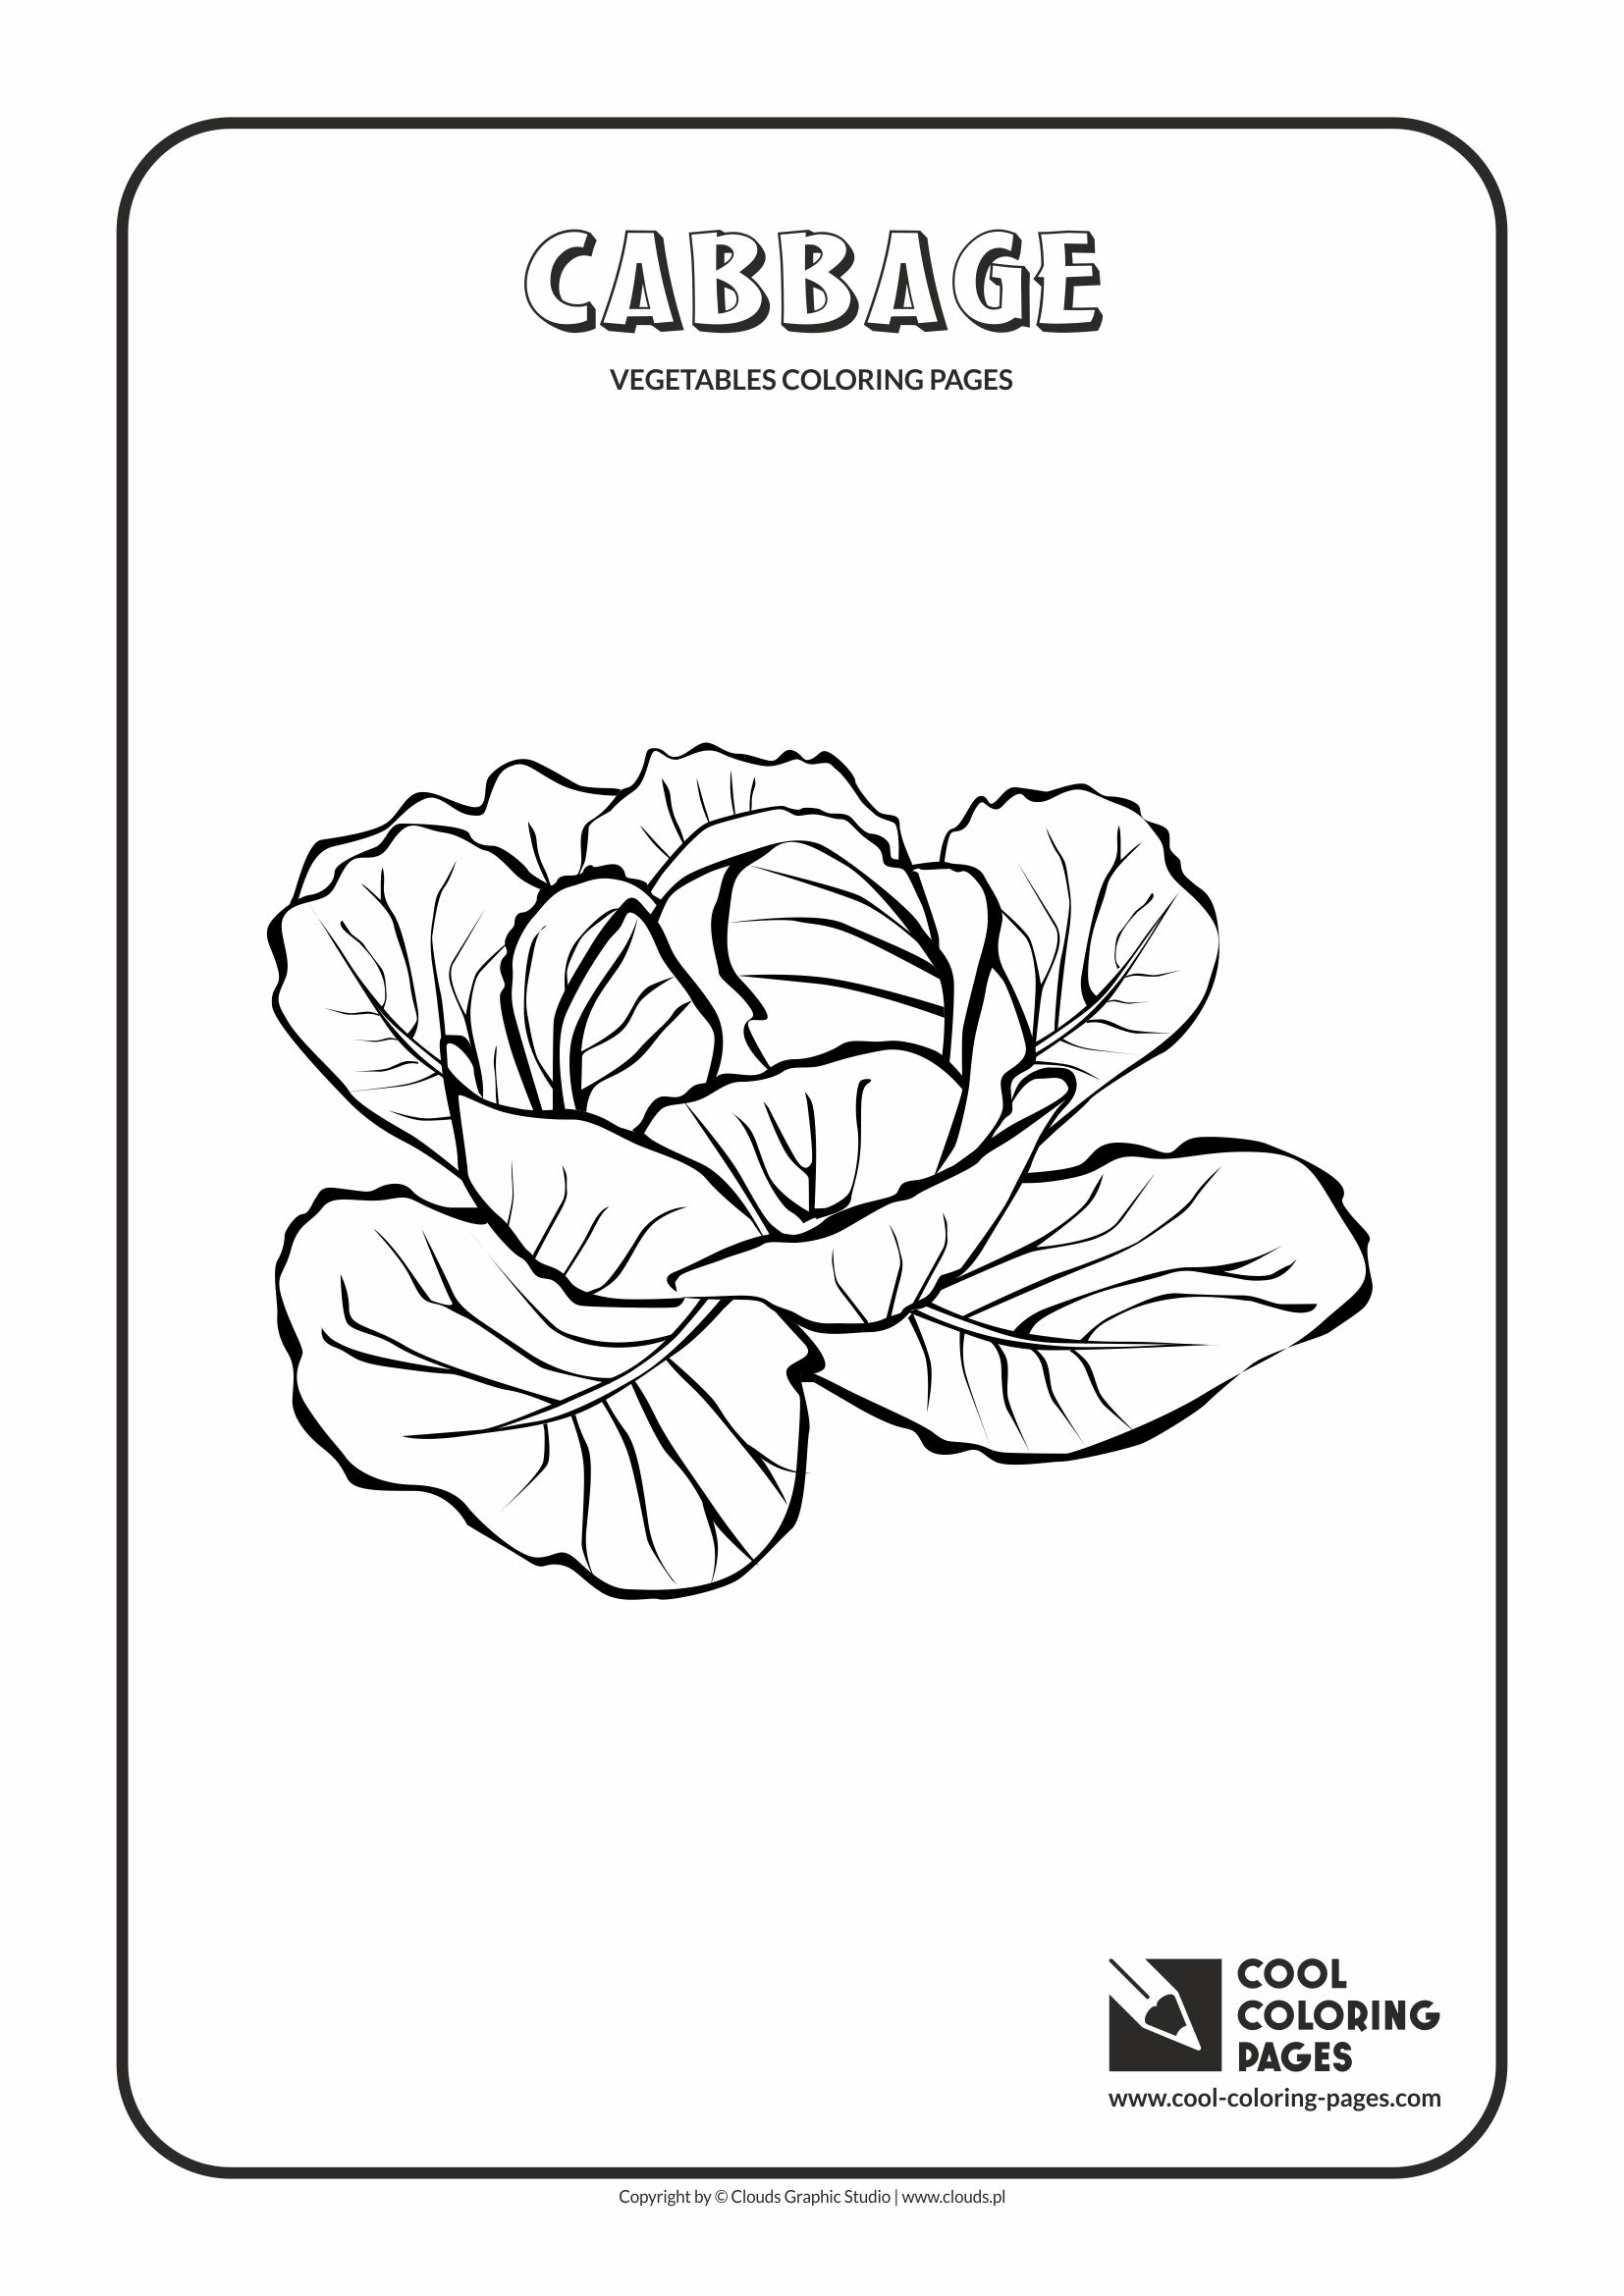 Cool Coloring Pages Vegetables coloring pages - Cool Coloring Pages ...